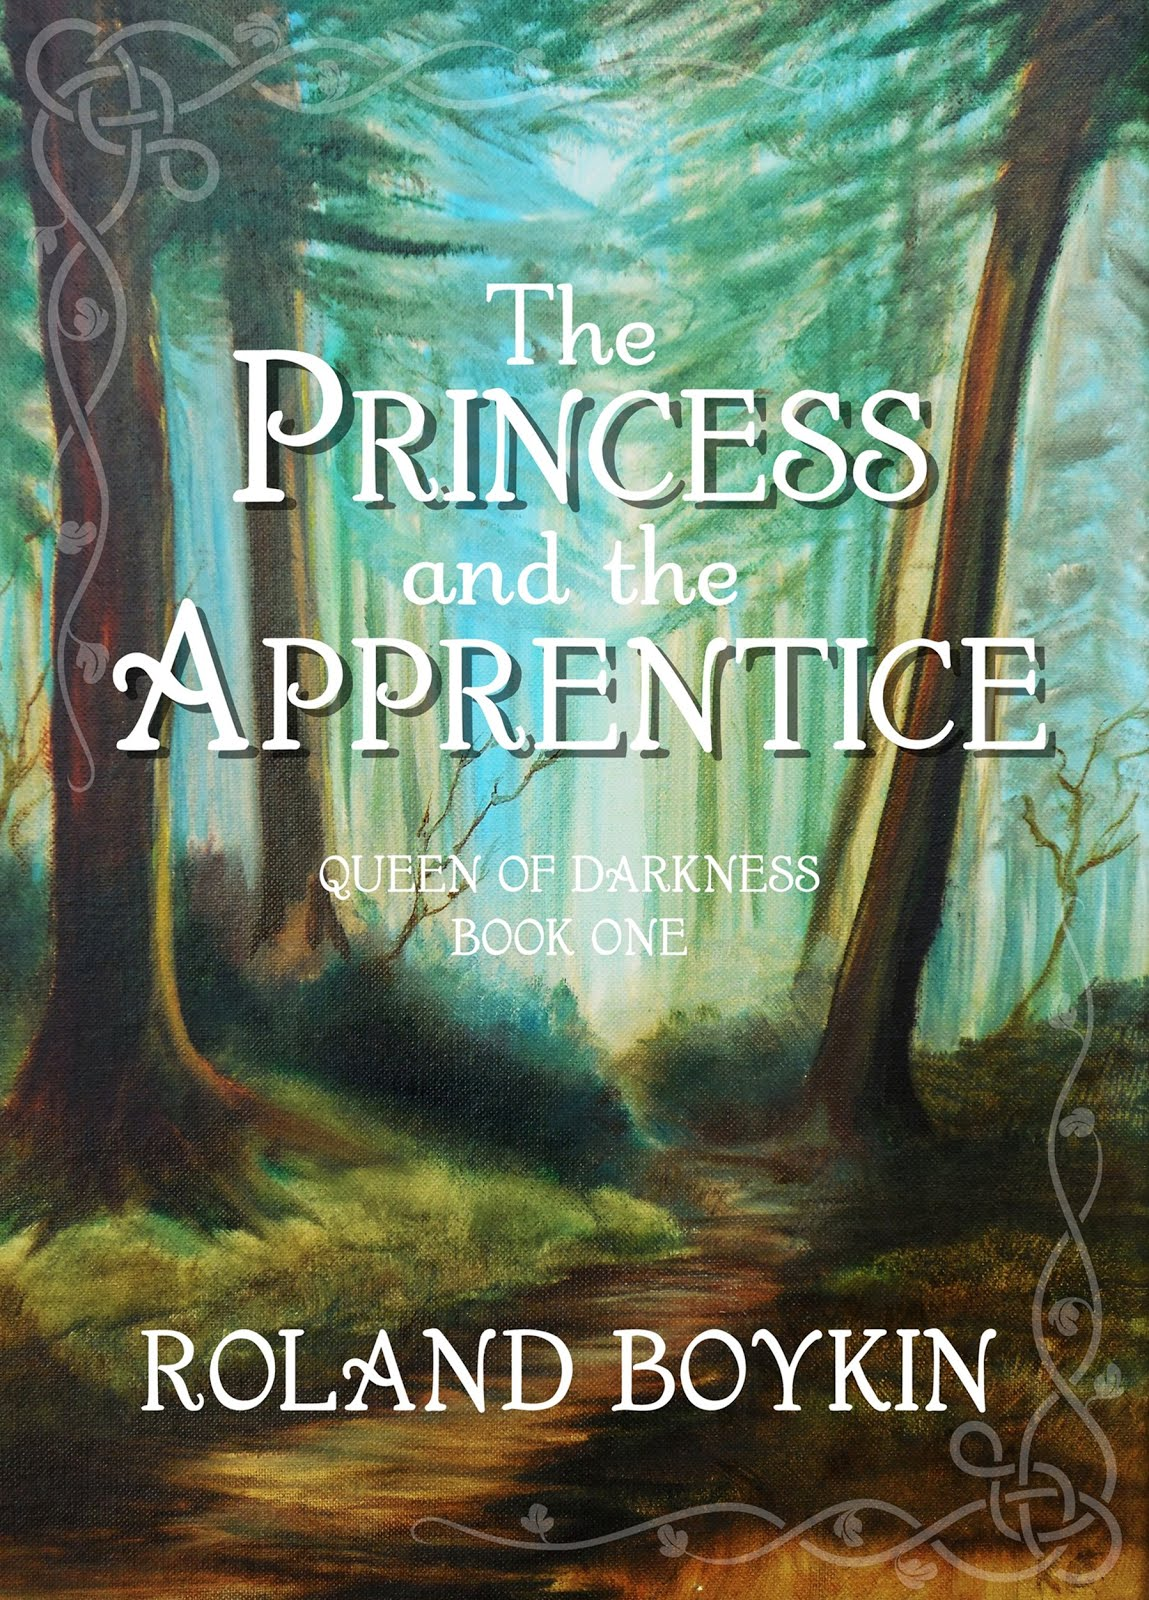 Books by Roland Boykin